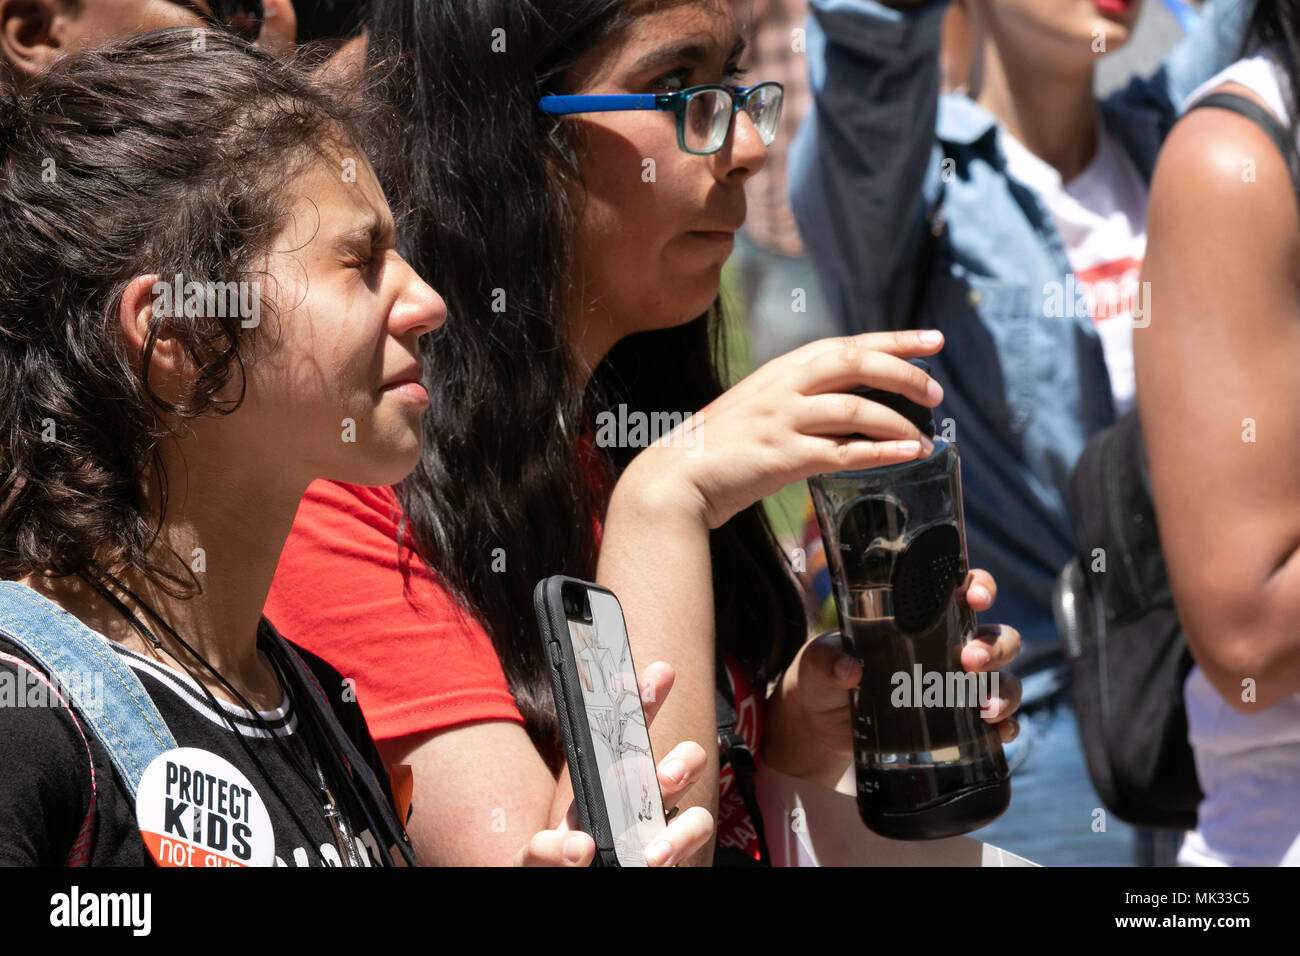 Dallas, USA. 05th May, 2018. A tearful demonstrator listens to the story of a gun violence victim at the NoRA protest in Dallas, Texas on May 5th, 2018. Credit: The Photo Access/Alamy Live News - Stock Image